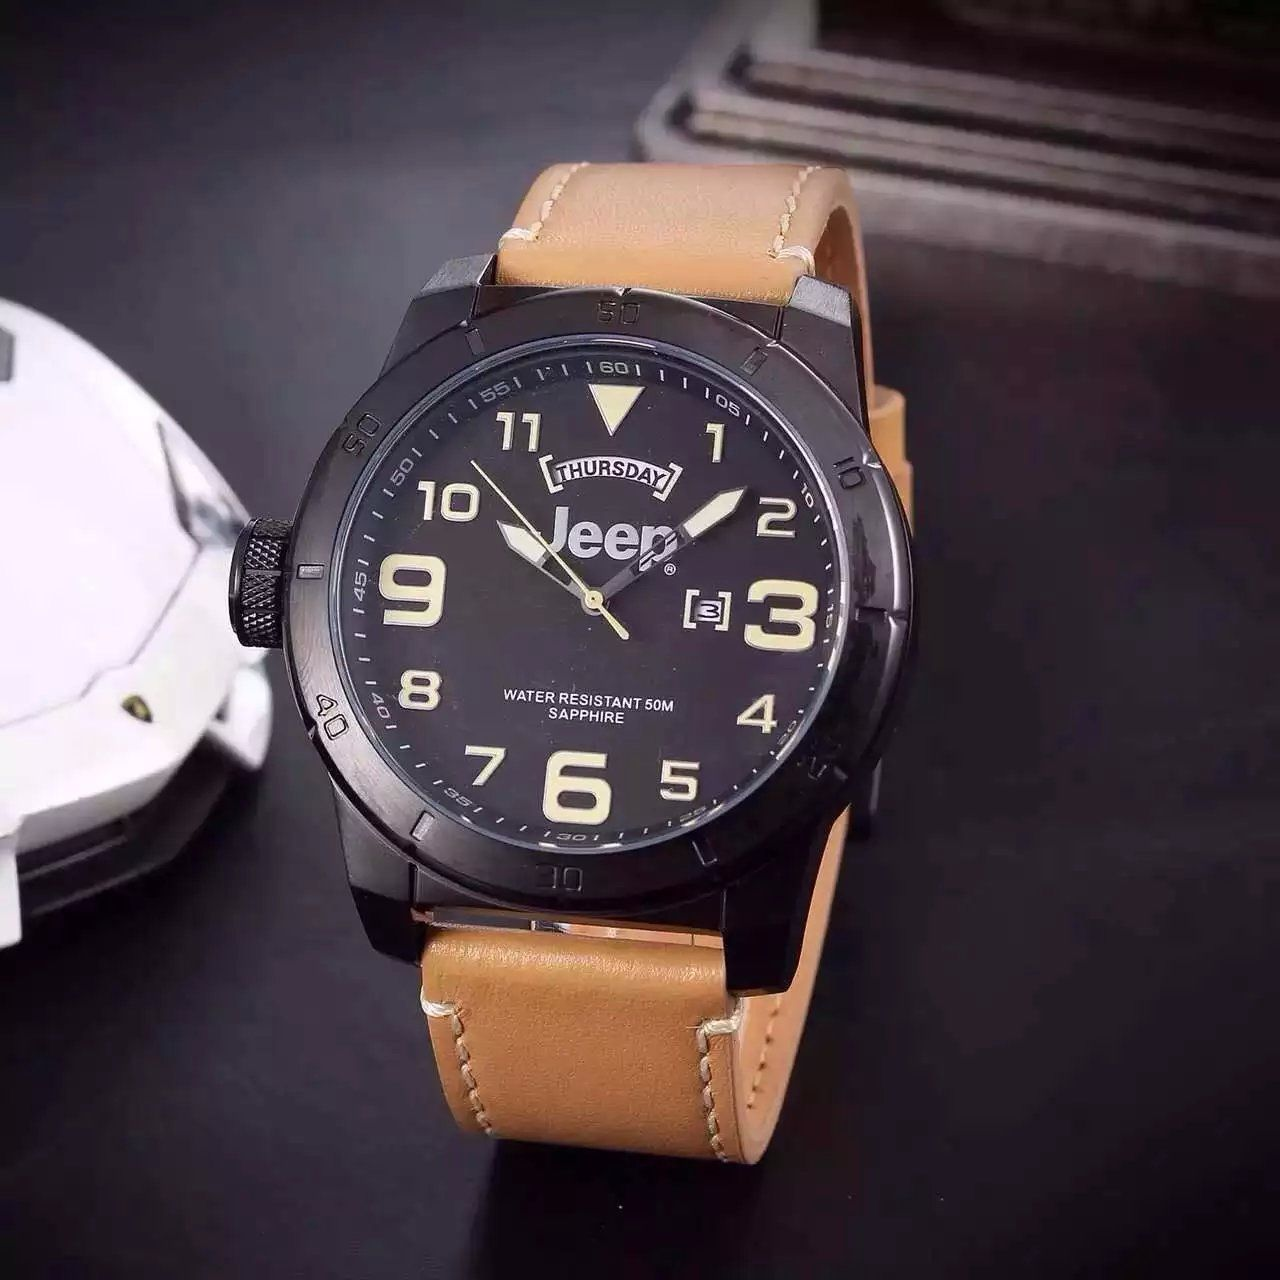 jeep s steel style domineering artificial men usd price week bbby stainless sports watchcase pin and calendar crystal watch sapphire outdoor with